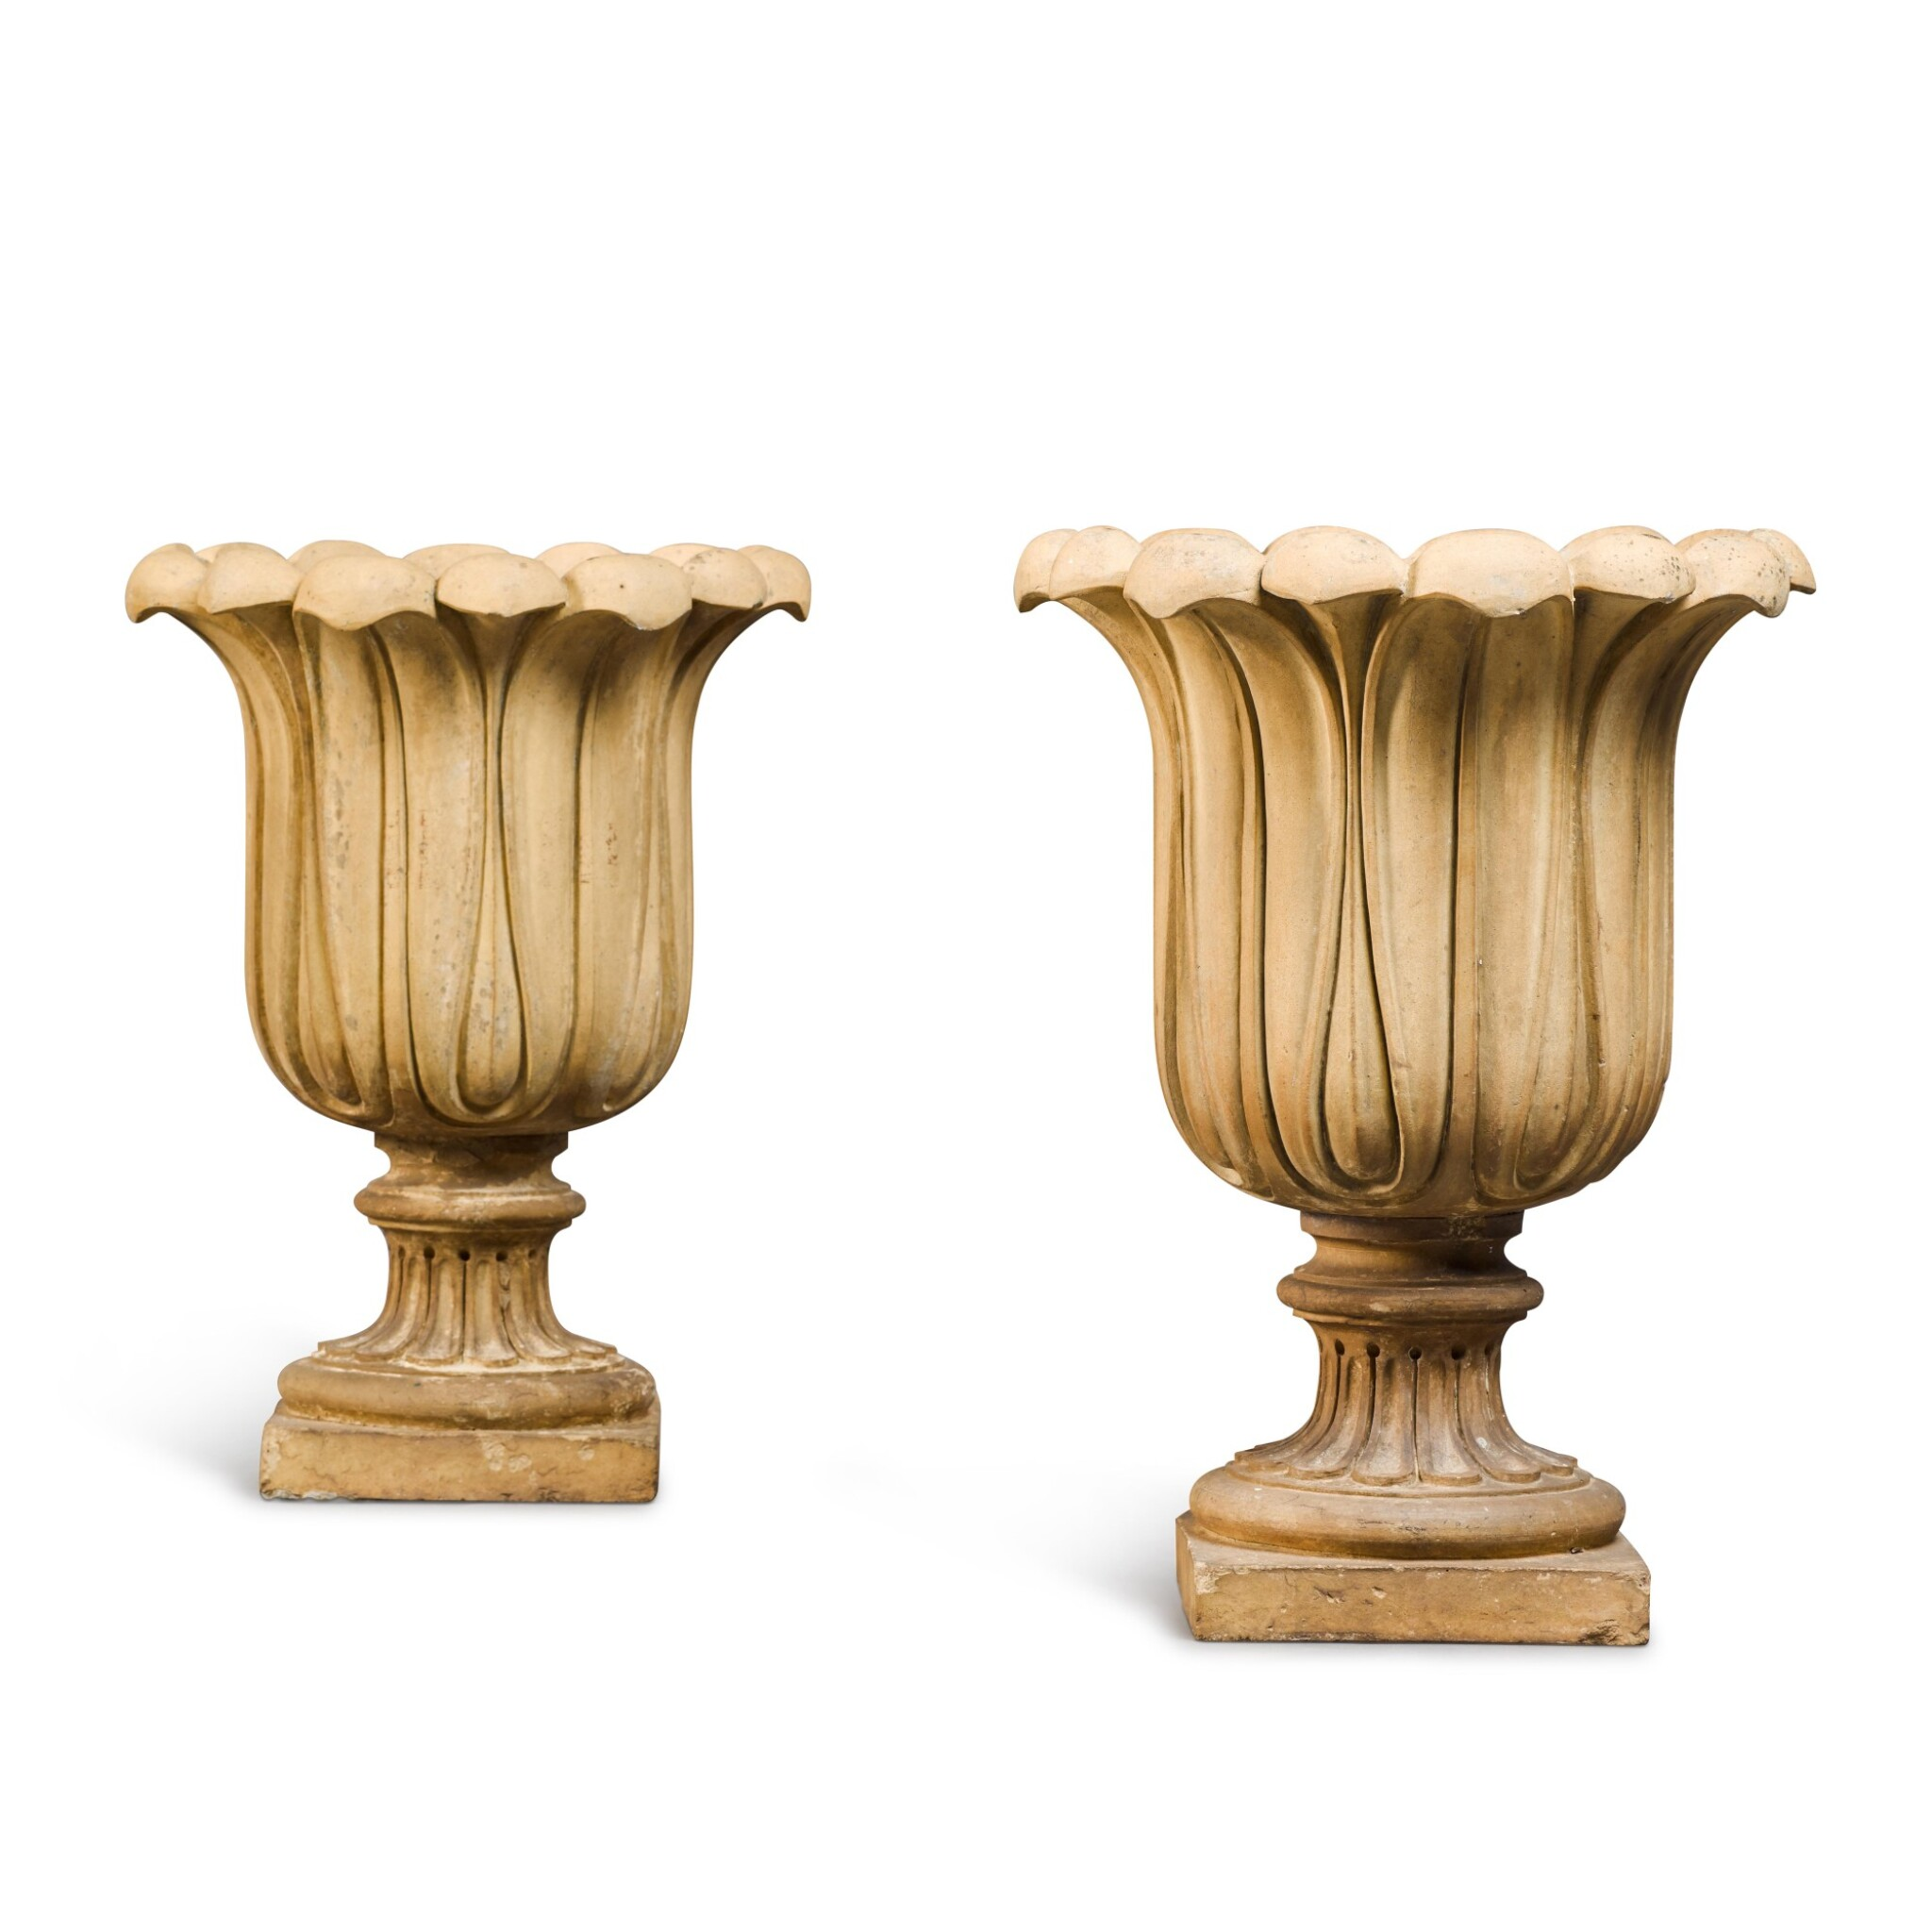 View full screen - View 1 of Lot 89. A PAIR OF BUFF TERRACOTTA GARDEN URNS, SECOND QUARTER 19TH CENTURY.